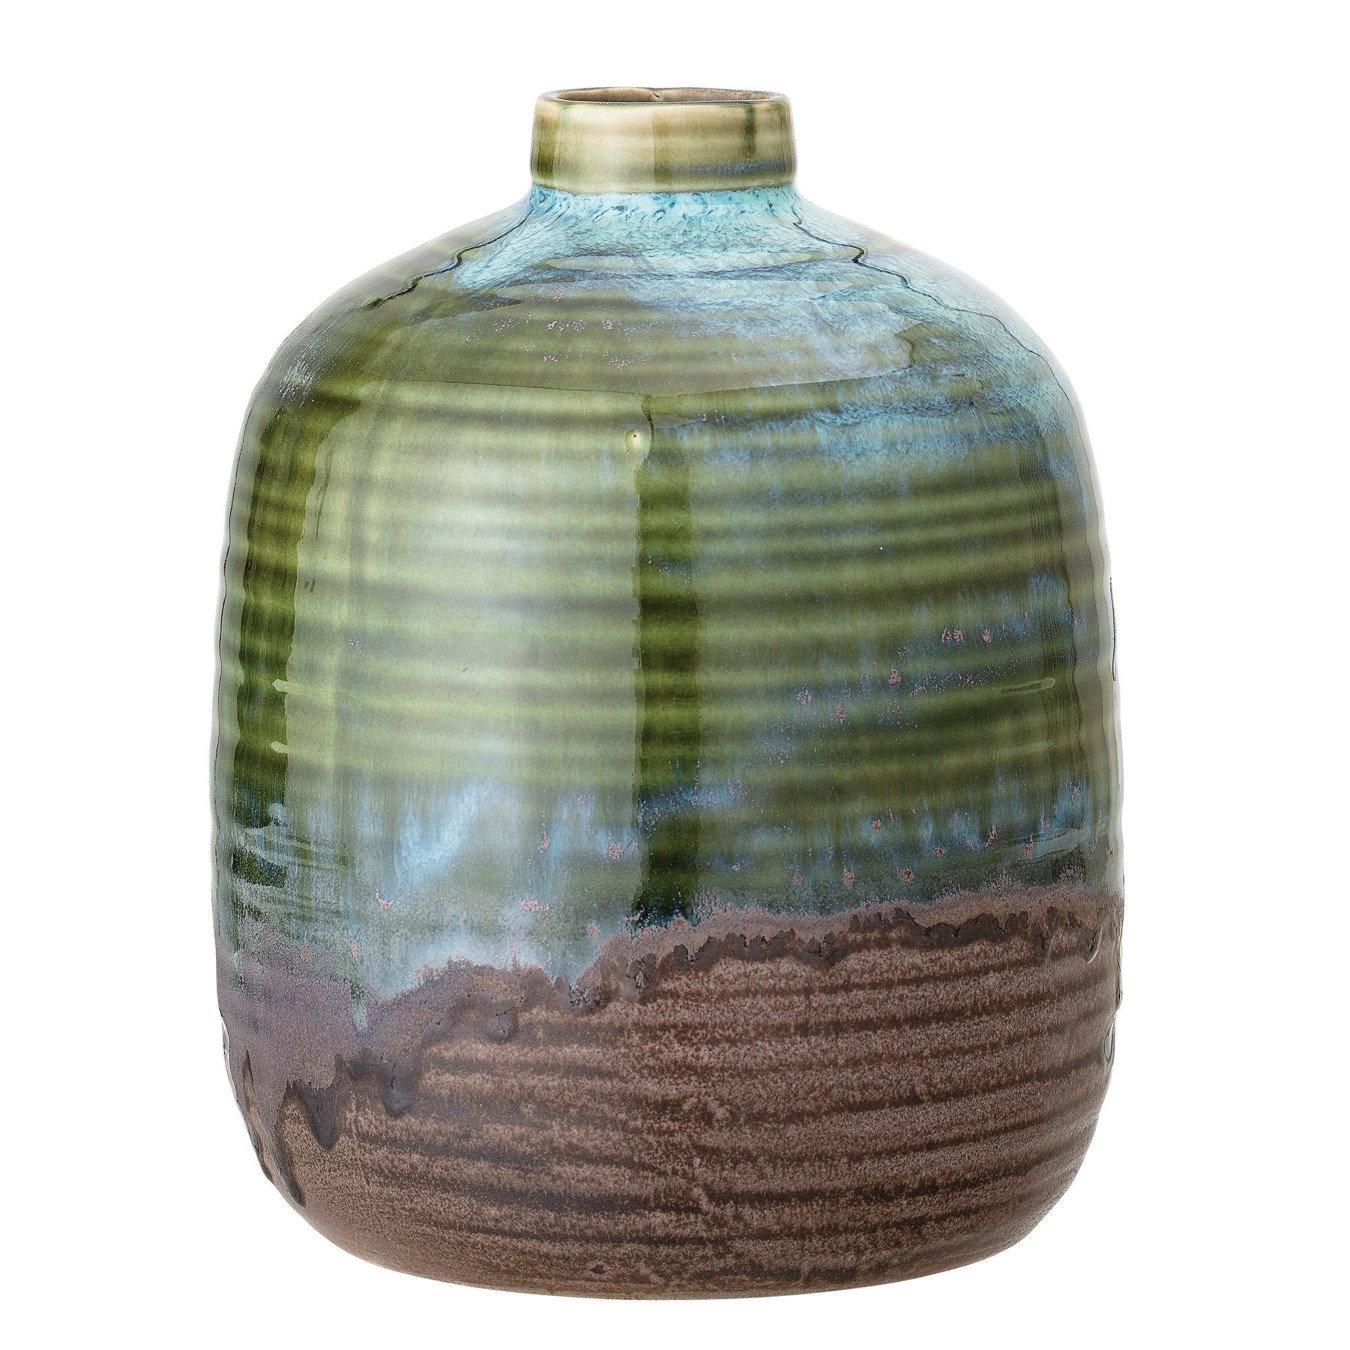 Green Stoneware Vase with Blue and Brown Accents & Reactive Glaze Finish (Each one will vary)